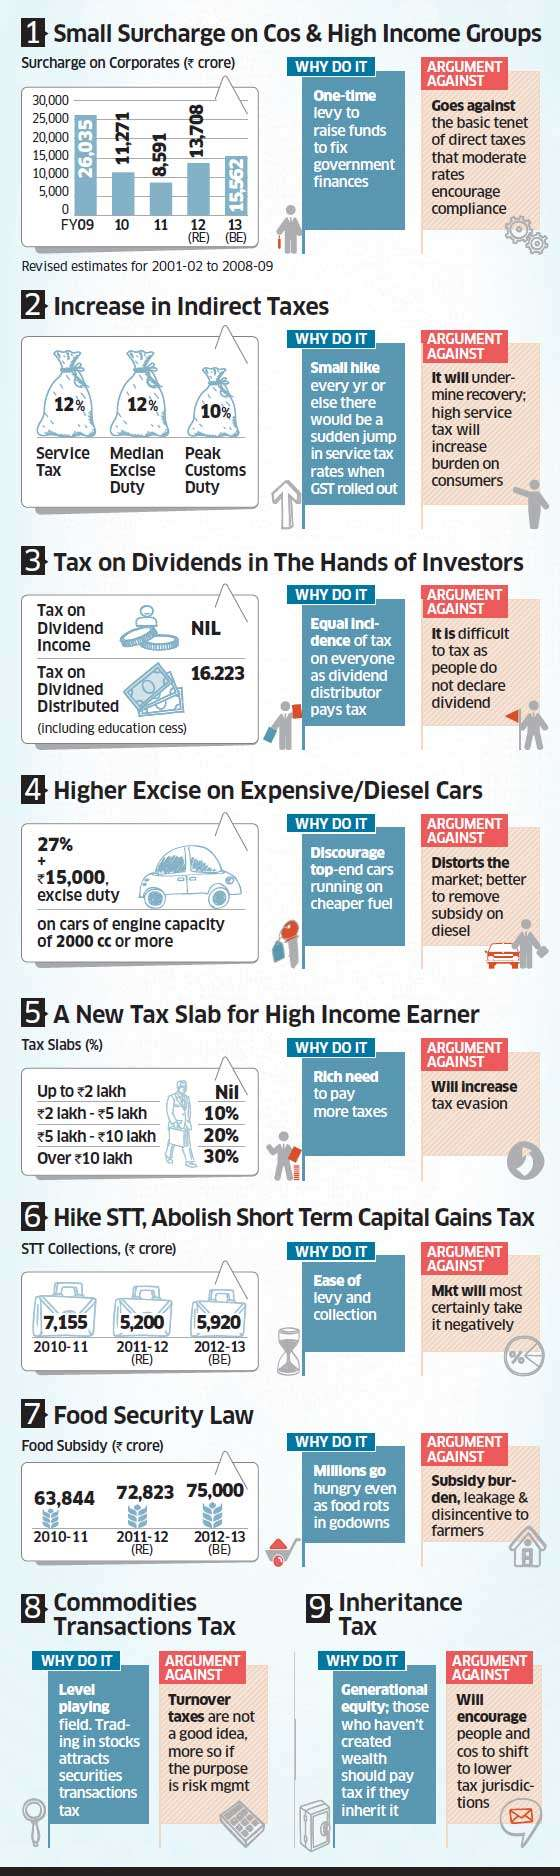 Budget 2013: Nine contentious proposals to watch out for